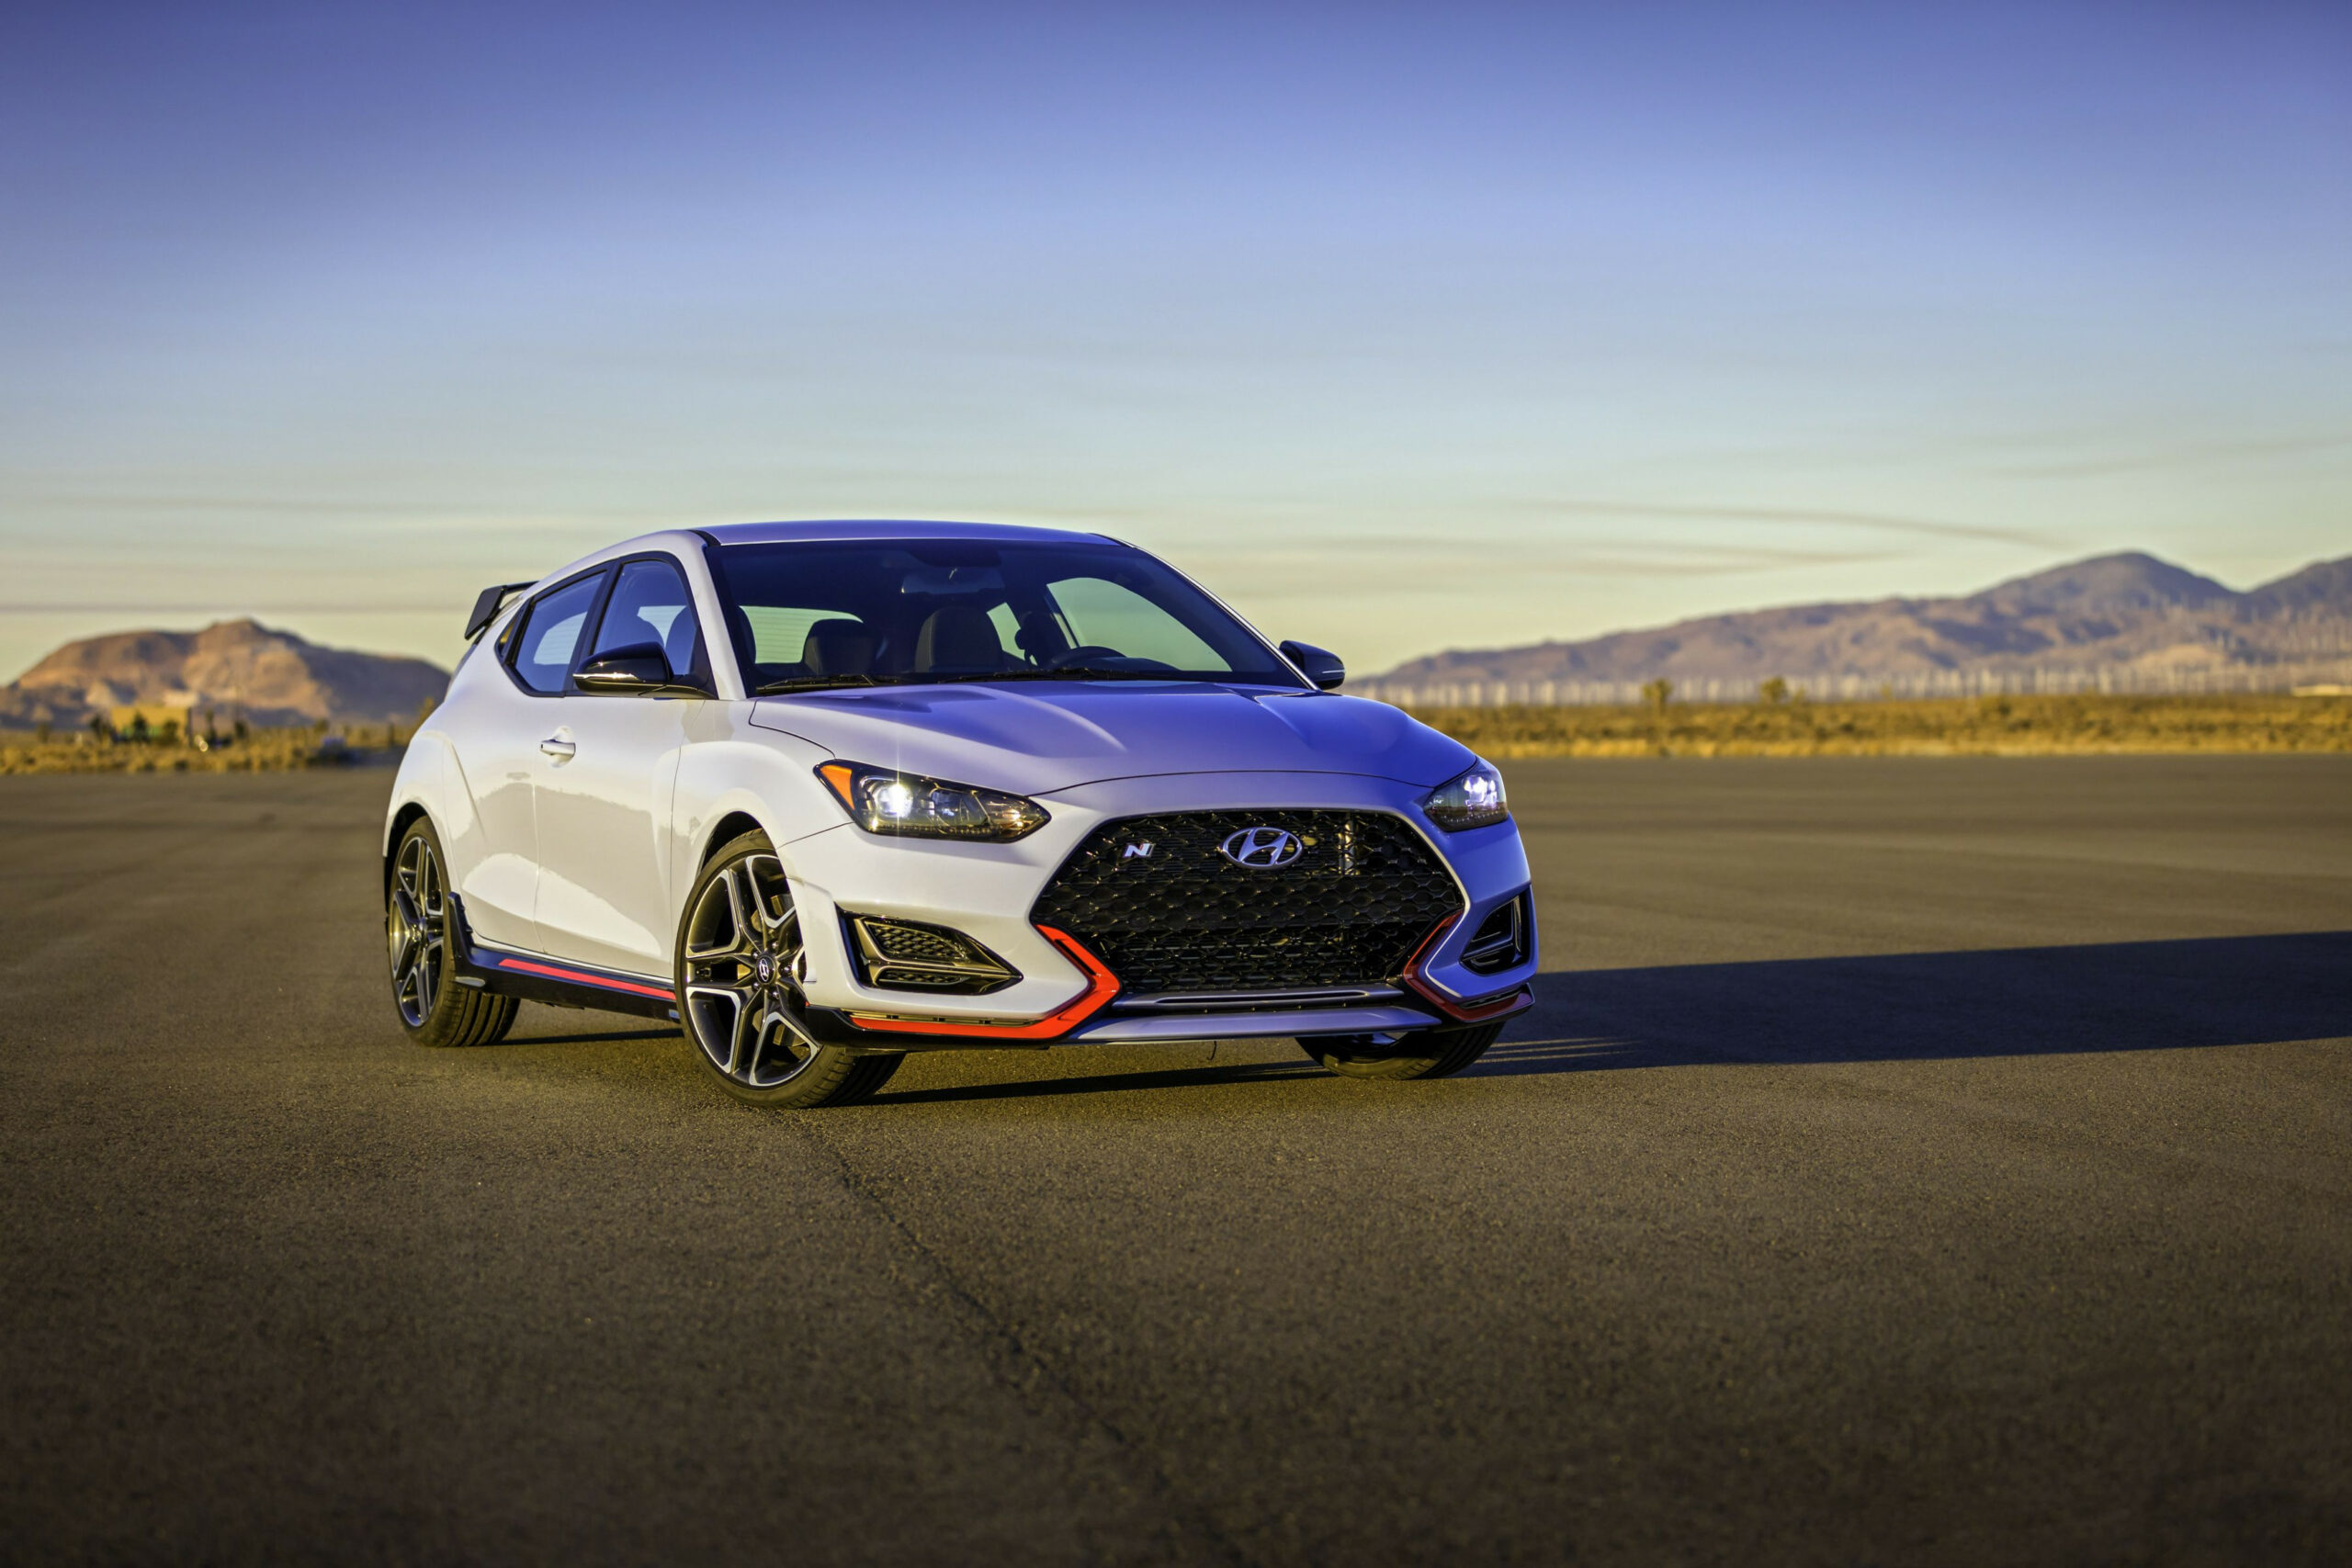 8 Hyundai Veloster N Review, Pricing, and Specs - 2020 hyundai veloster n specs